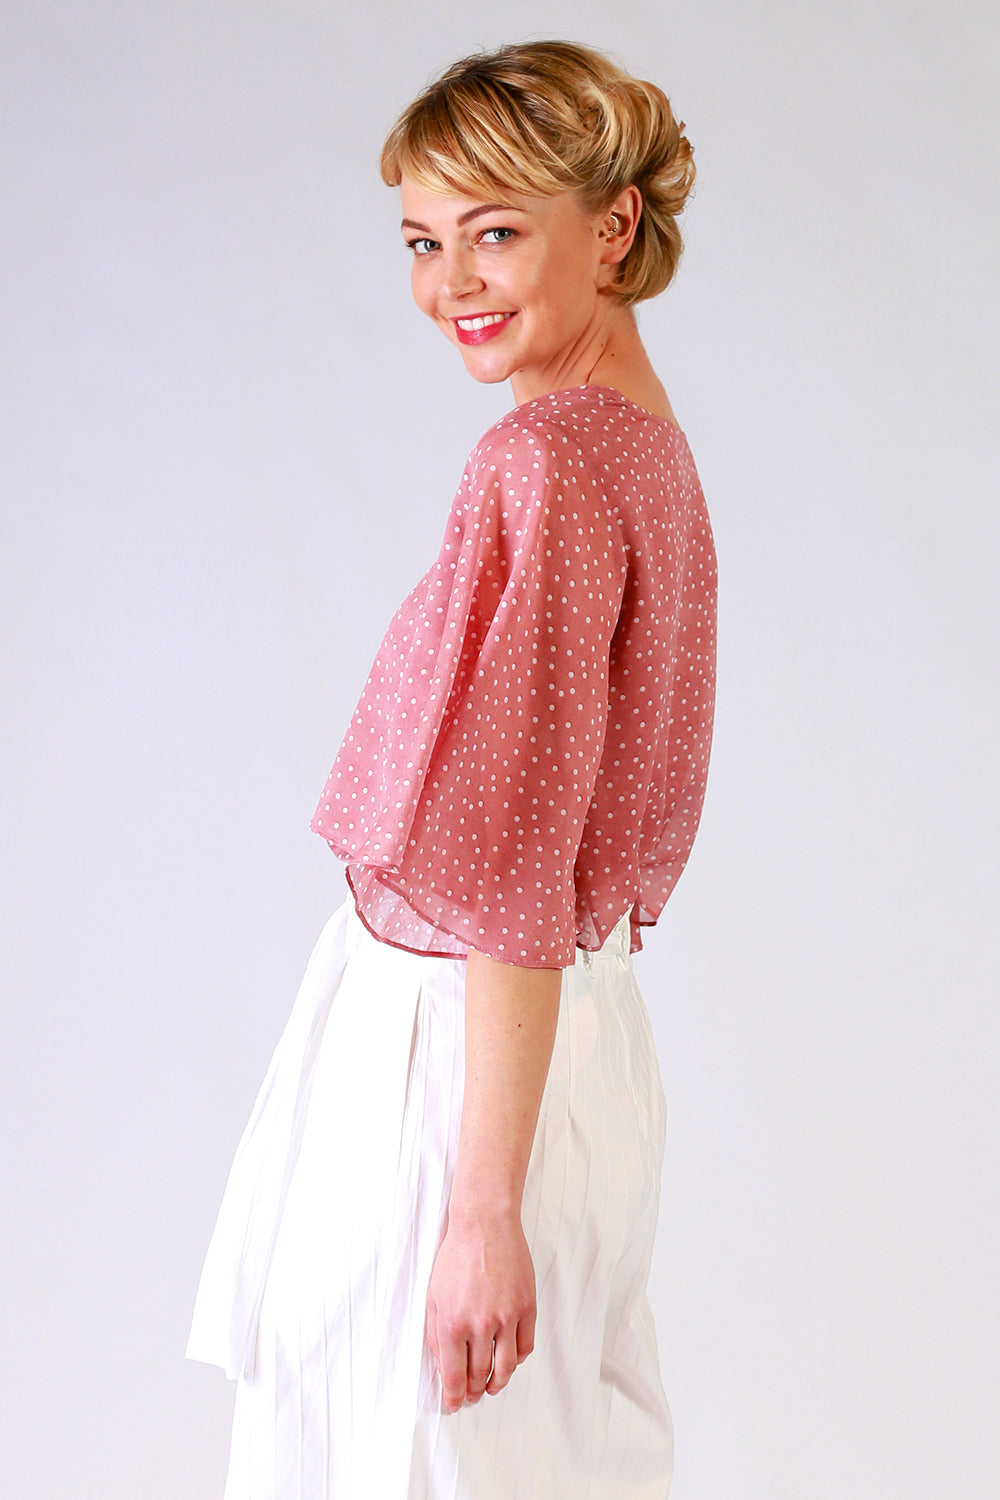 Cora Jazz Top | Pink Top | Tops | Summer Collection | Fashion Design | Annah Stretton | New Zealand Fashion Designer